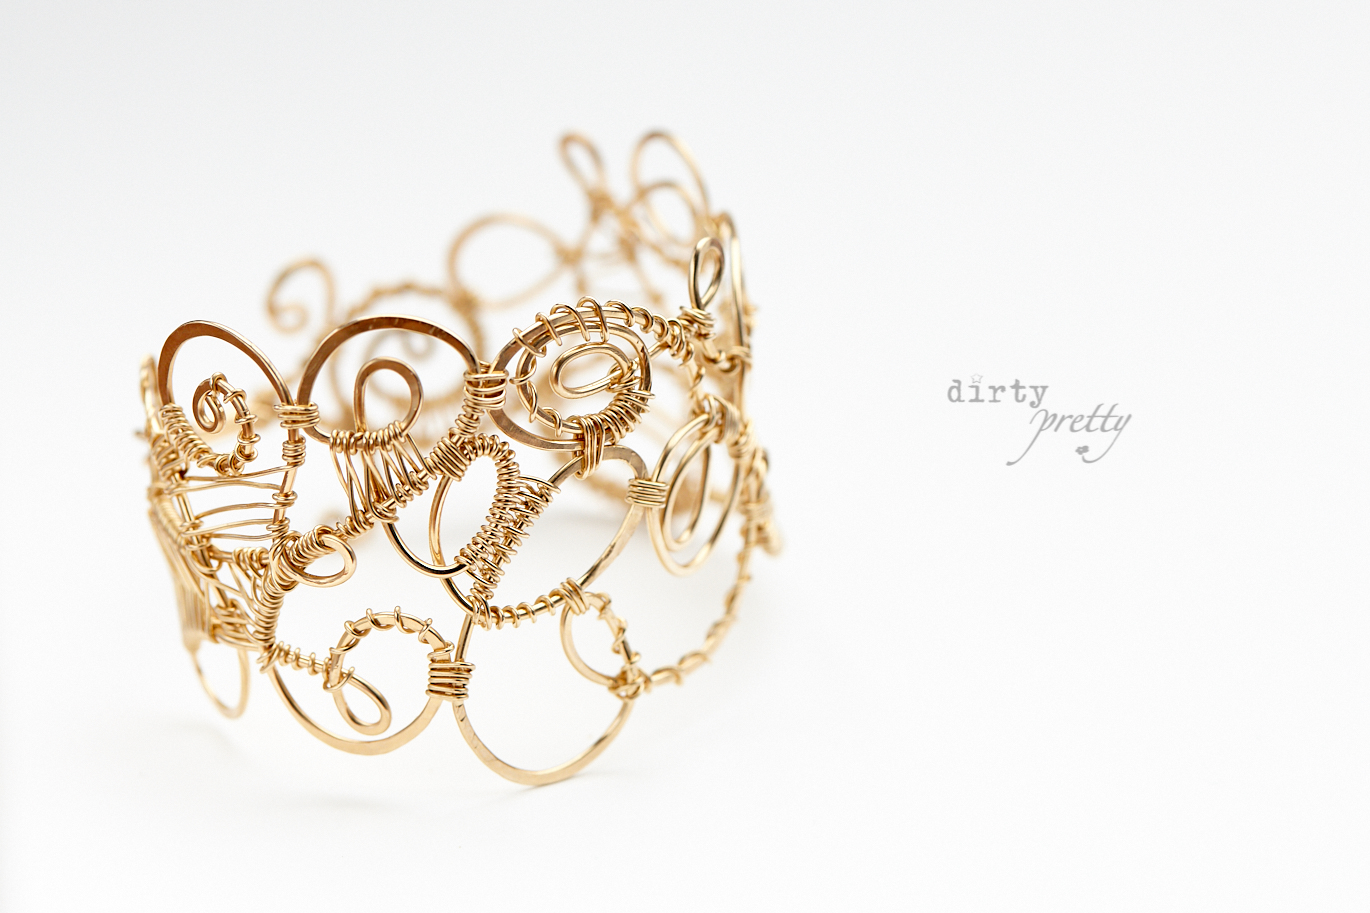 14th wedding anniversary gifts - Organized Chaos Gold Bracelet by dirtypretty artwear - Anniversary gifts for wife